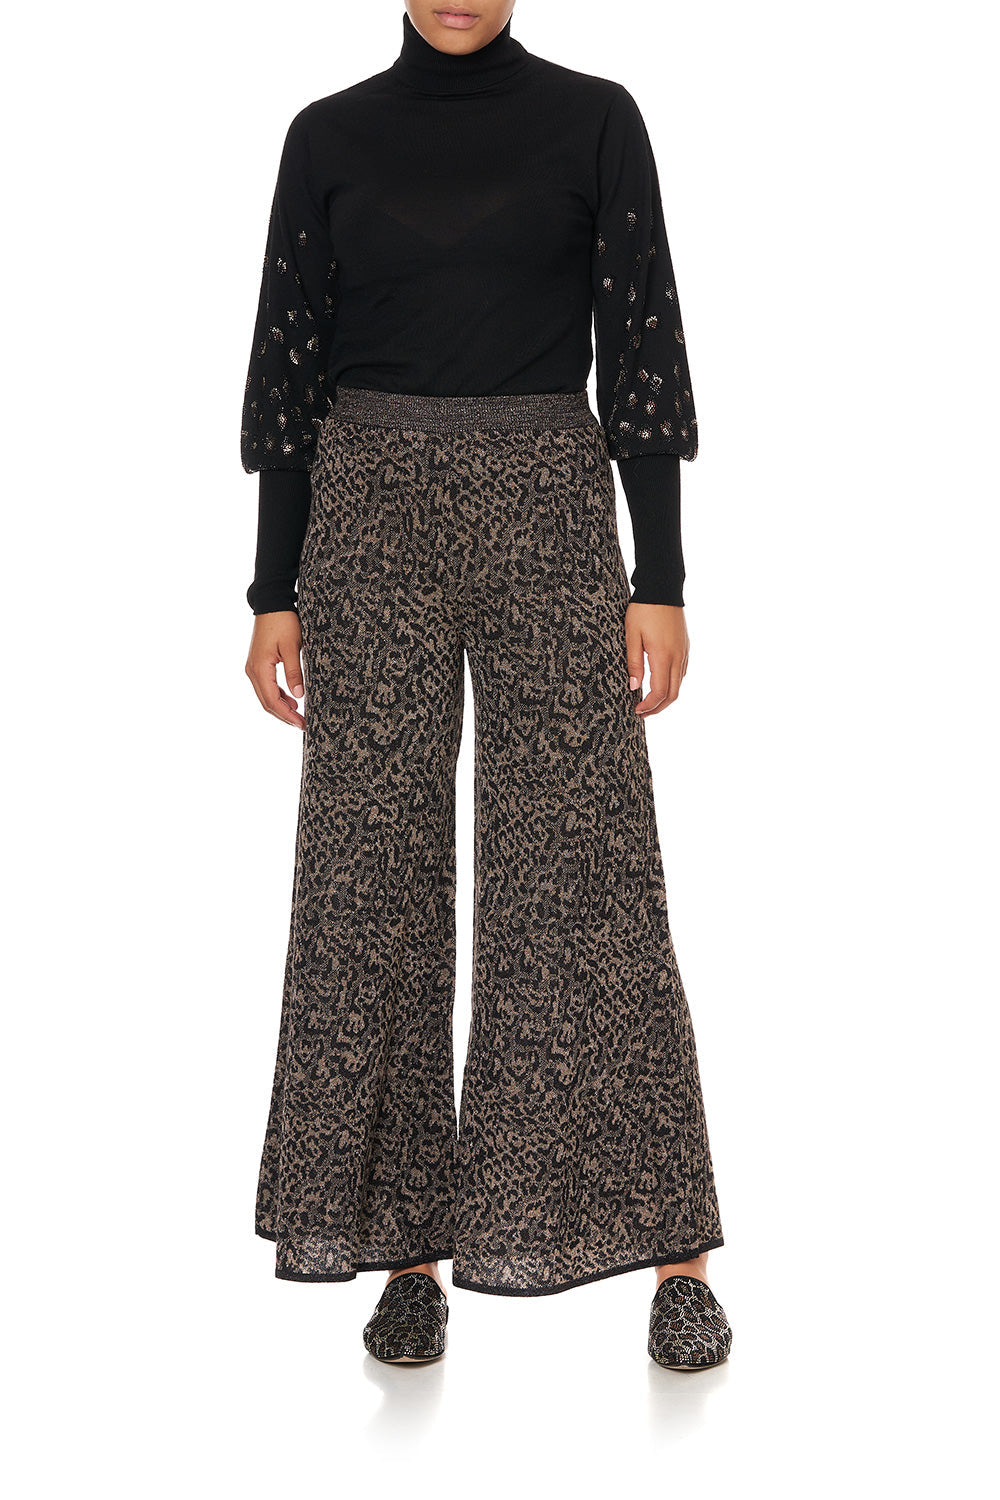 SUPER WIDE FLARE PANT ABINGDON PALACE